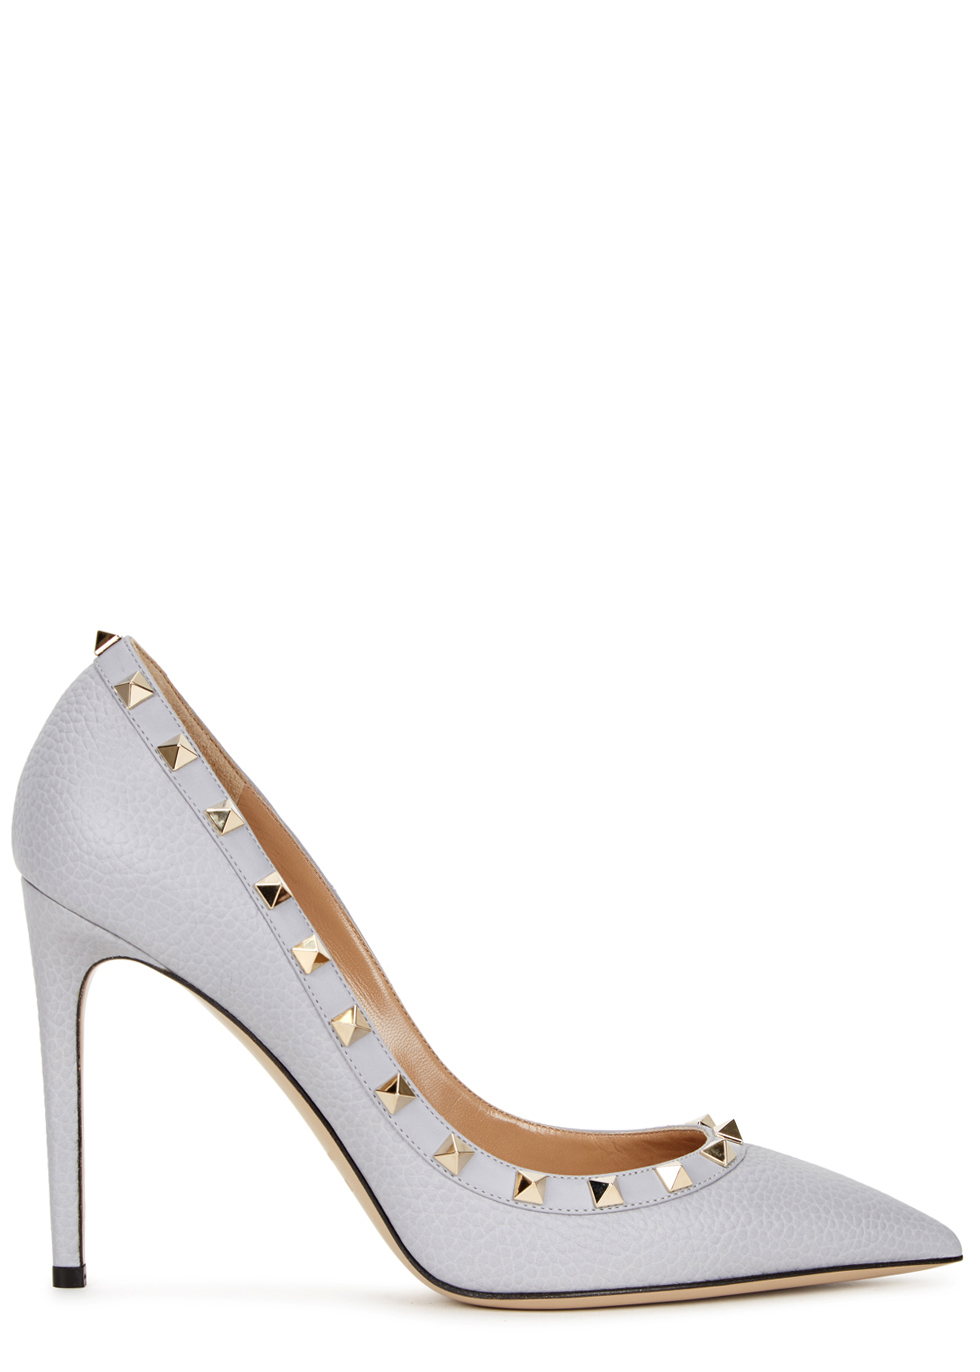 Rockstud 100 Pale Blue Leather Pumps Size - predominant colour: pale blue; occasions: evening; material: leather; heel height: high; embellishment: studs; heel: stiletto; toe: pointed toe; style: courts; finish: plain; pattern: plain; season: a/w 2016; wardrobe: event